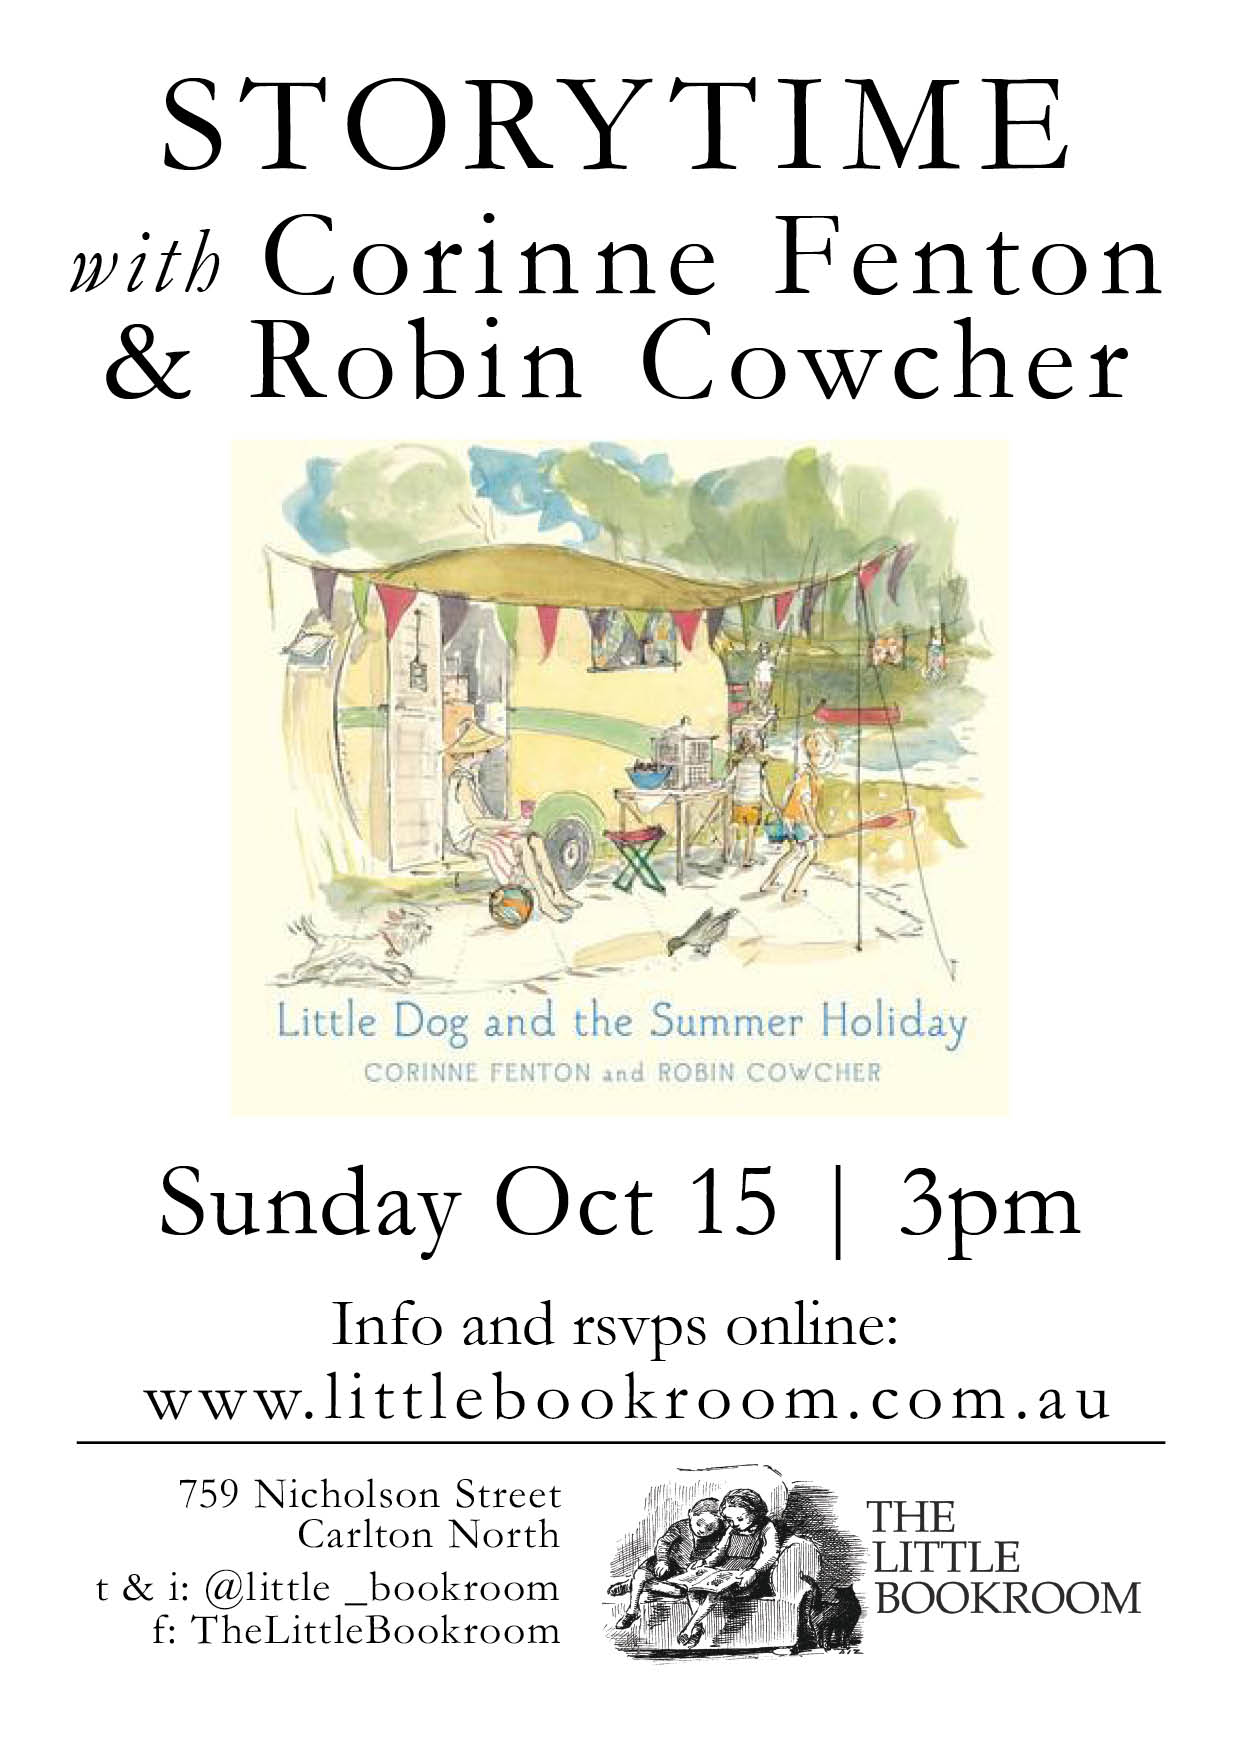 Storytime with Corinne Fenton & Robin Cowcher -Sunday October 15th - 3pm